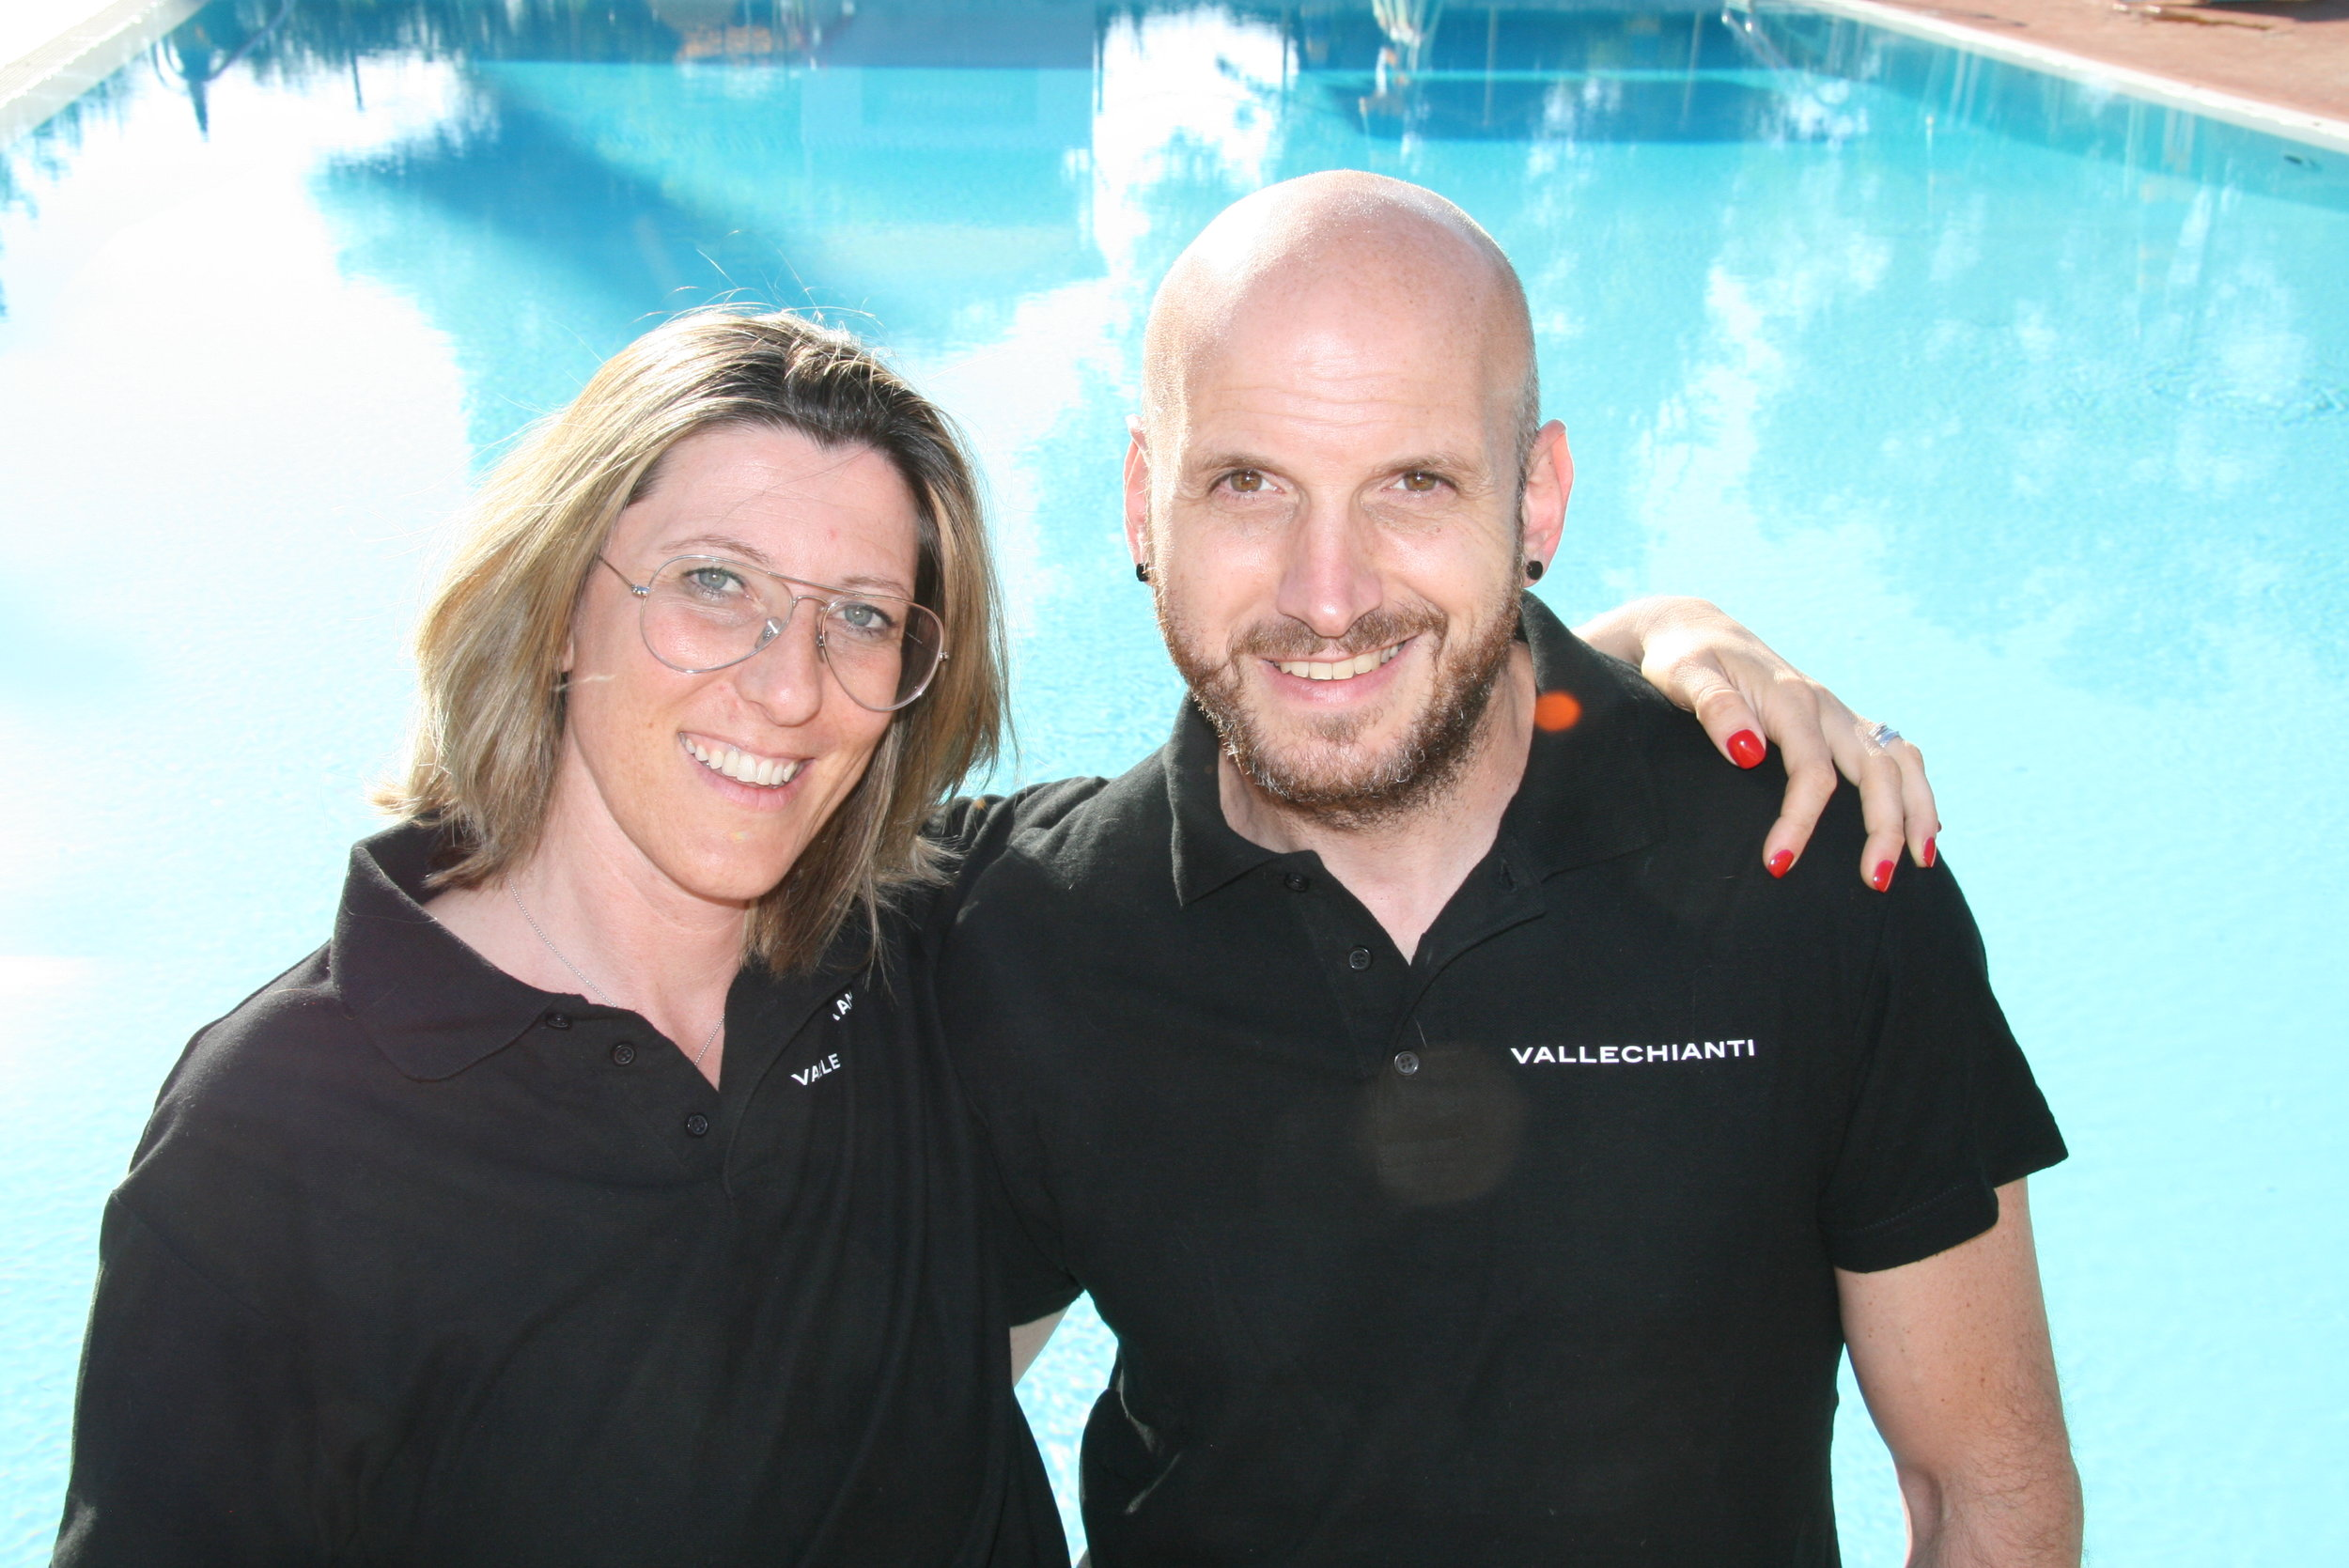 Marco & Elisabetta, swimming pool's managers